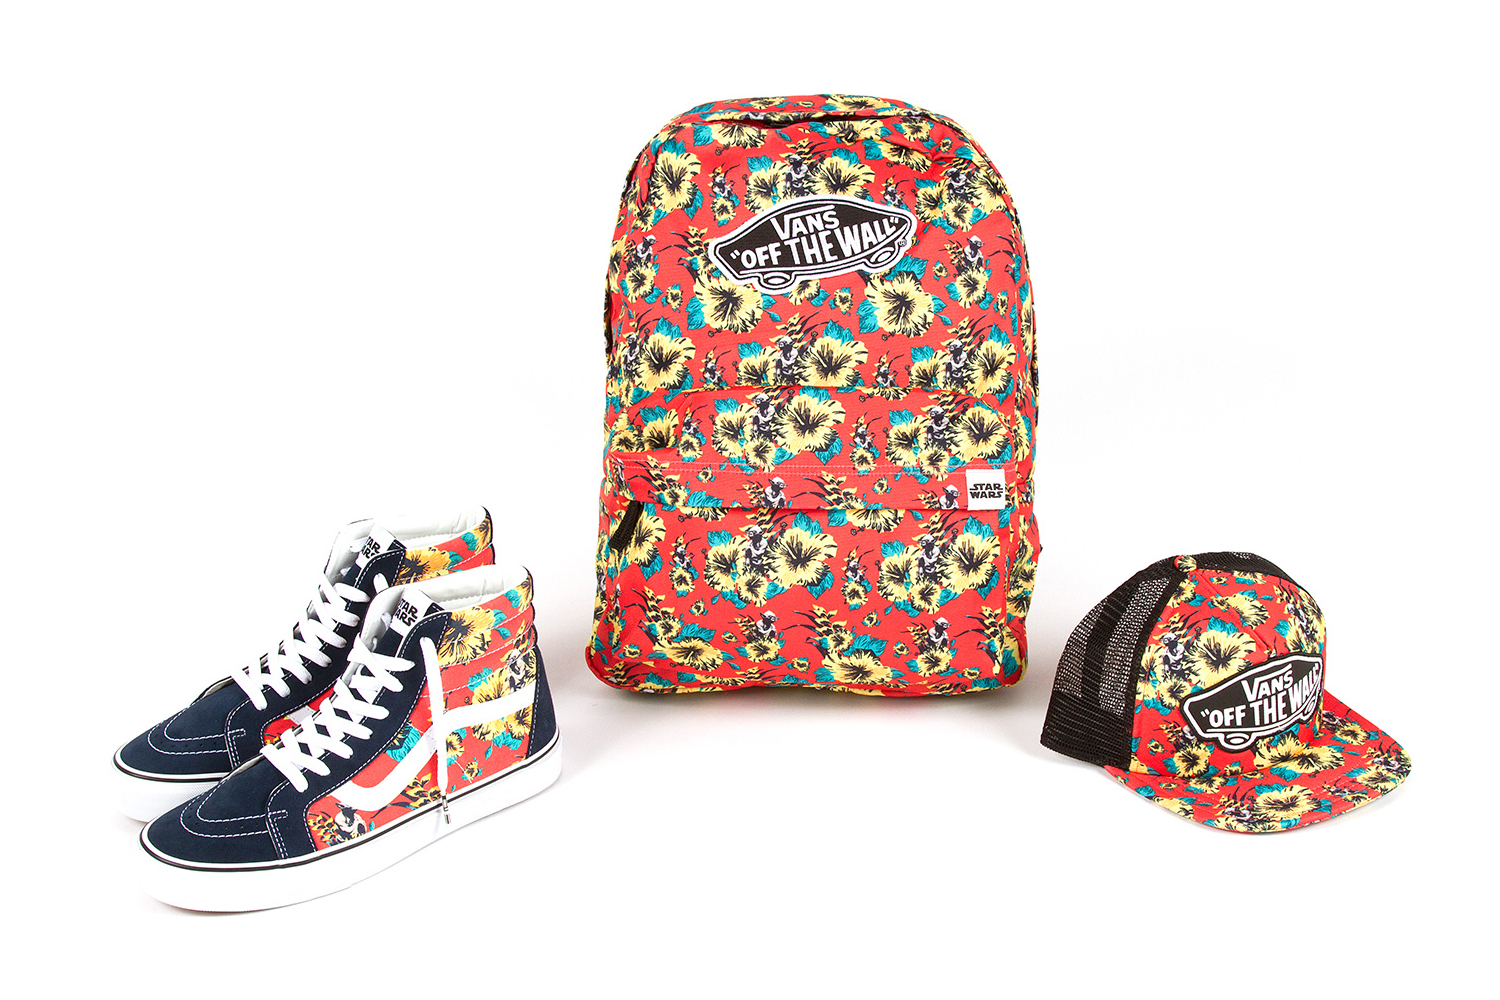 Vans-x-Star-Wars_-Yoda-Aloha-Accessories-Collection